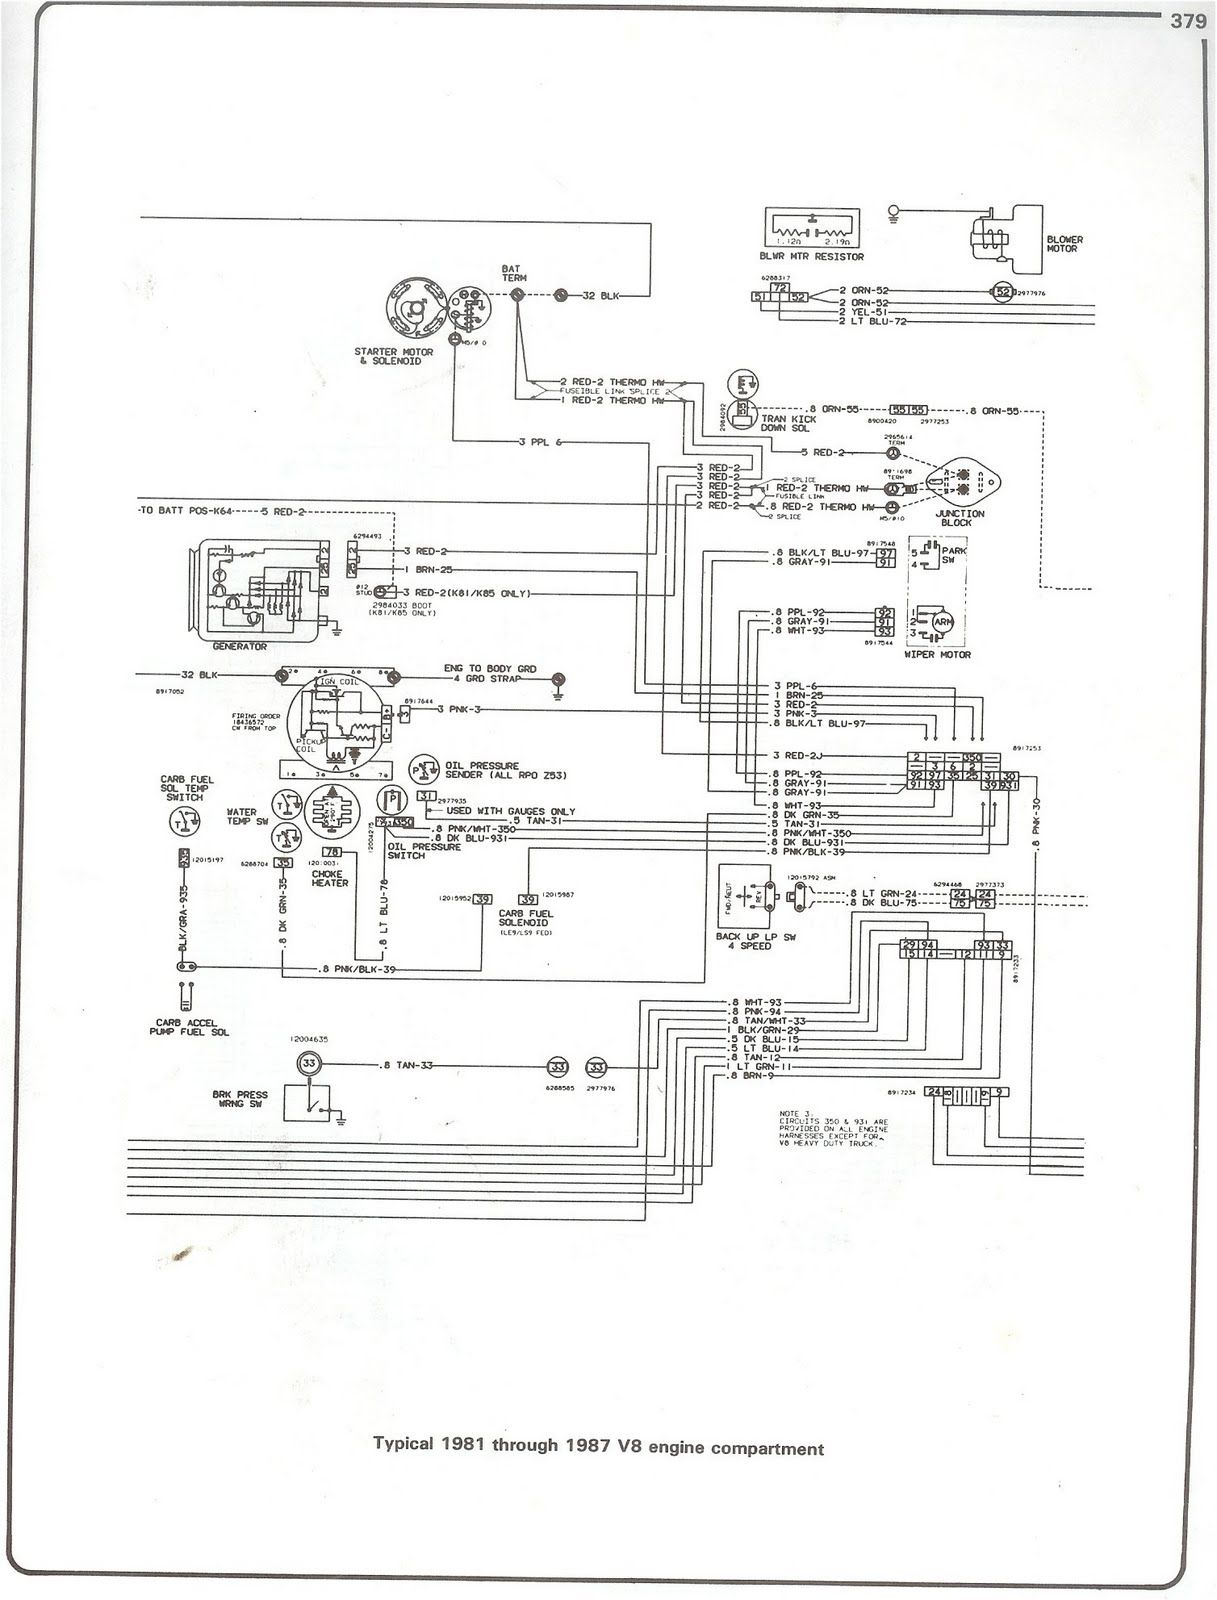 this is engine compartment wiring diagram for 1981 trough 1987 rh pinterest com